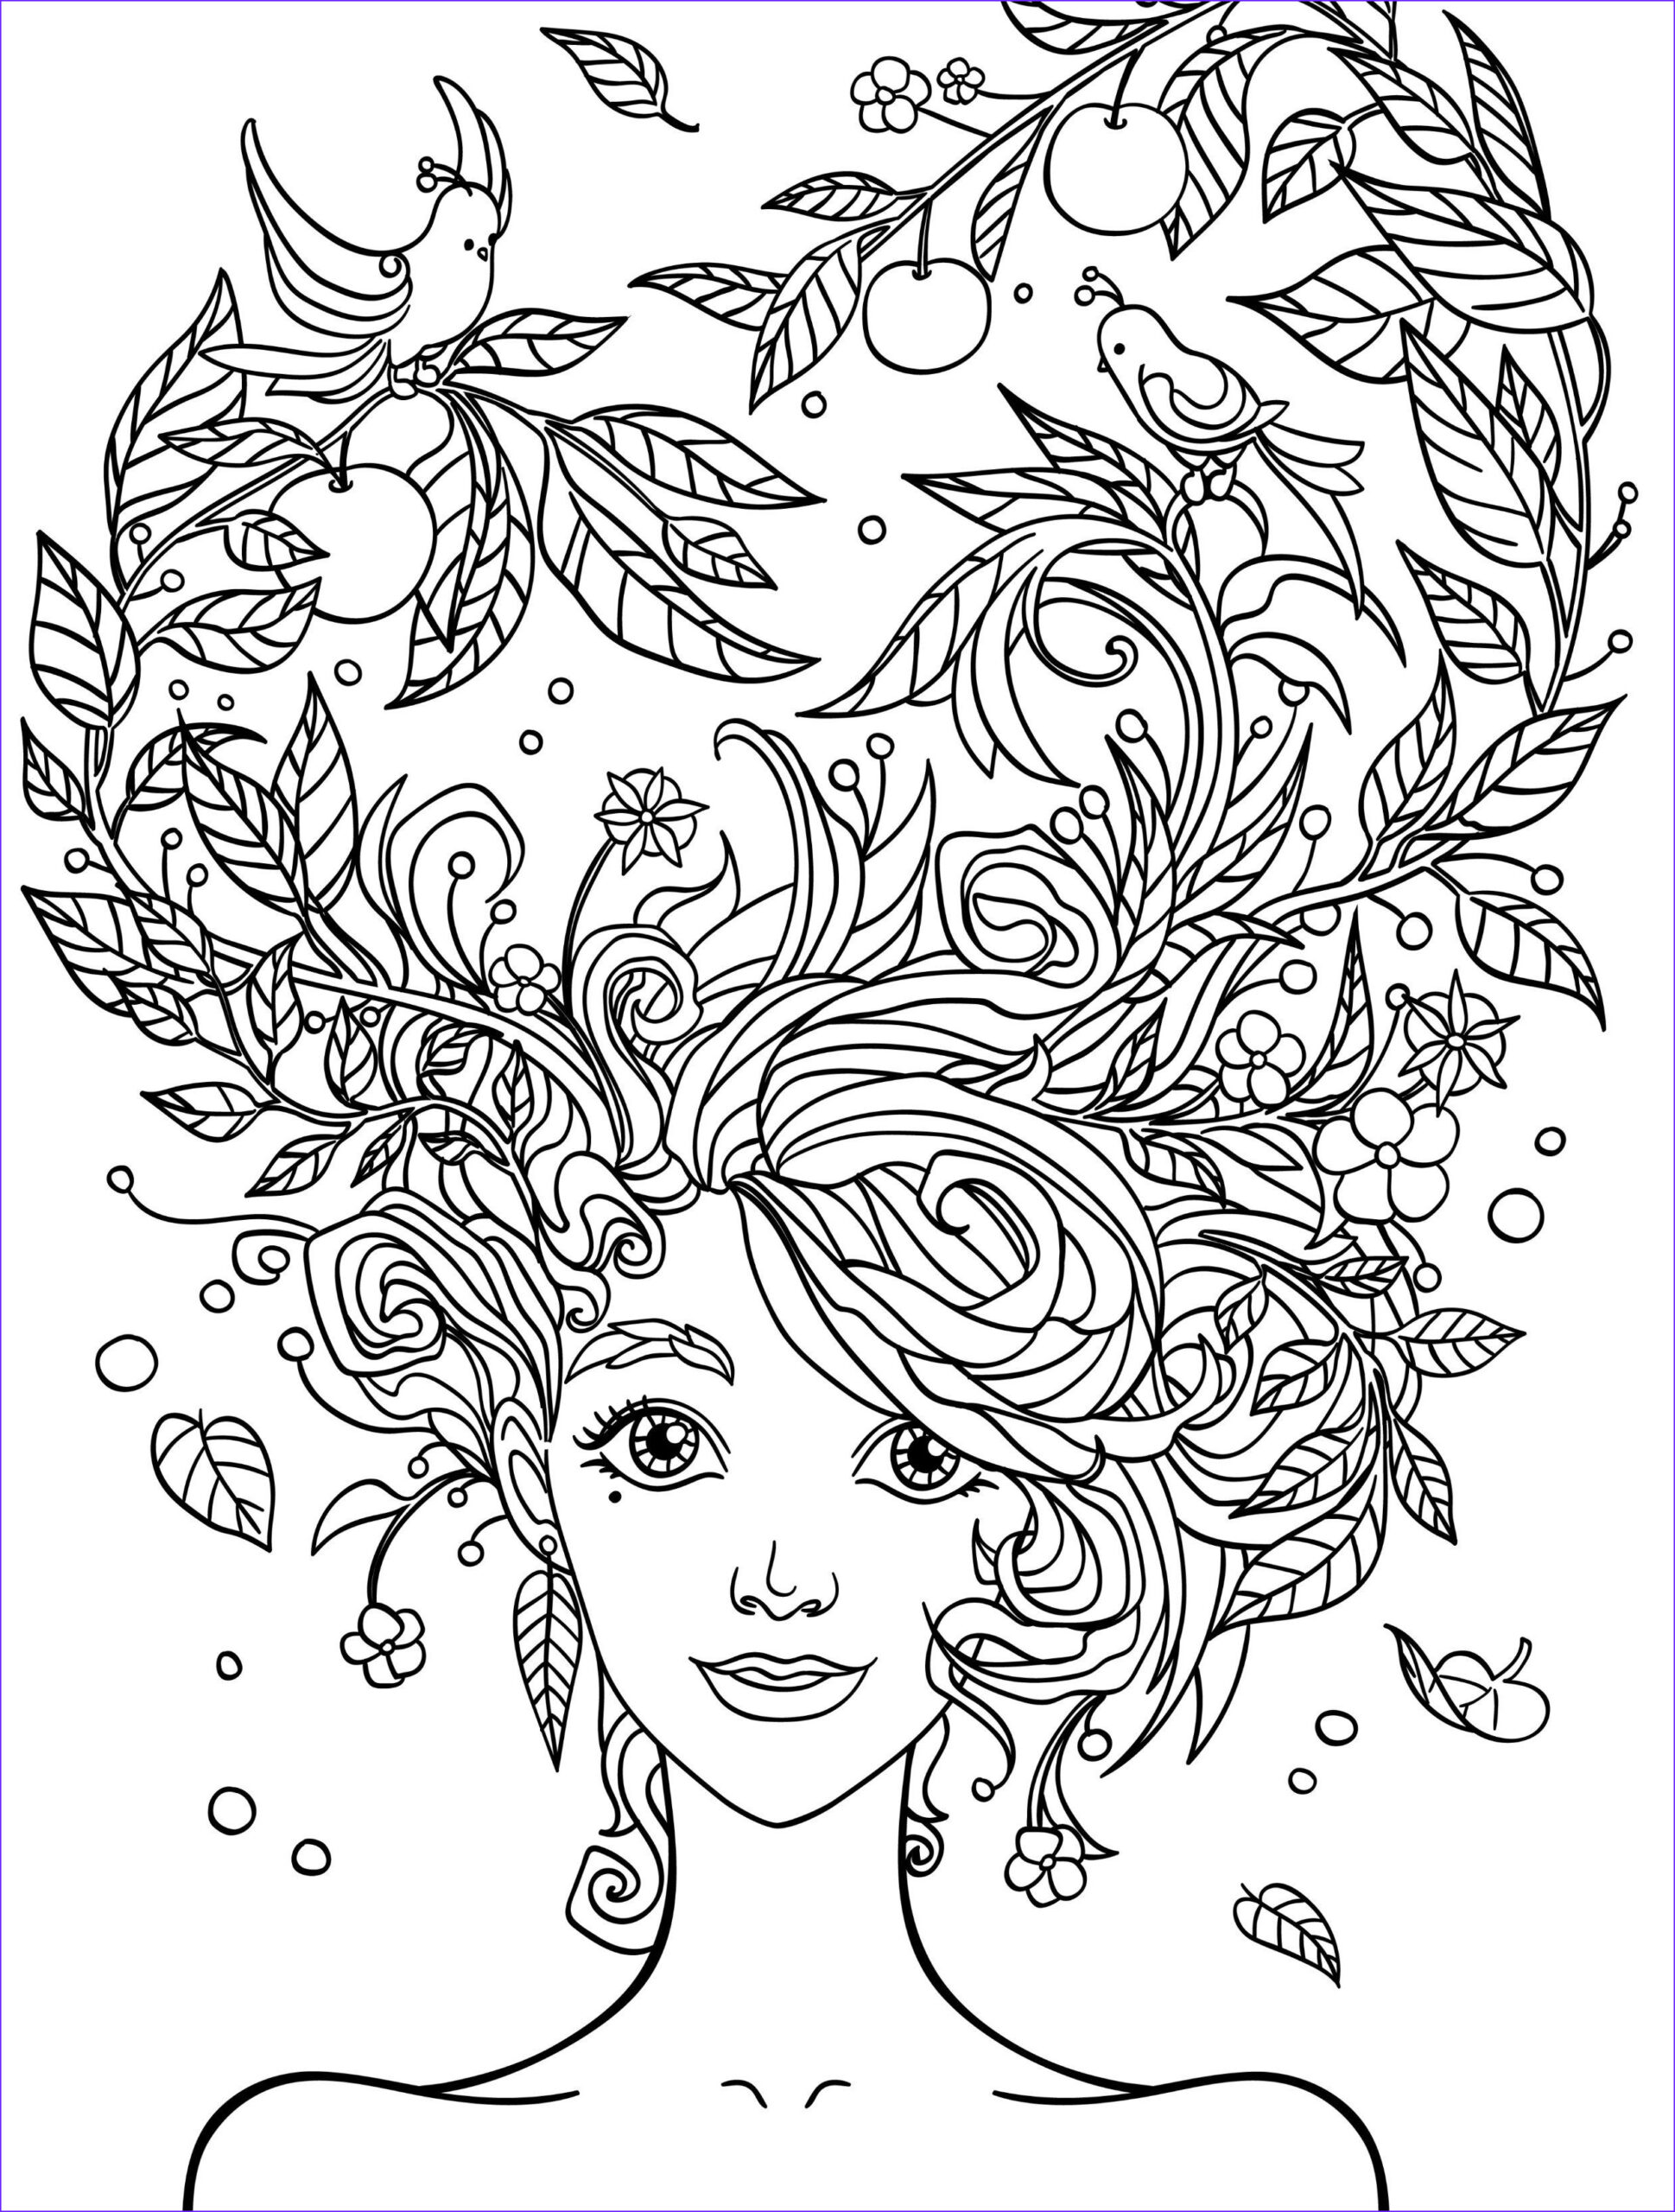 Free Coloring Pages for Adults Printable Elegant Gallery 10 Crazy Hair Adult Coloring Pages